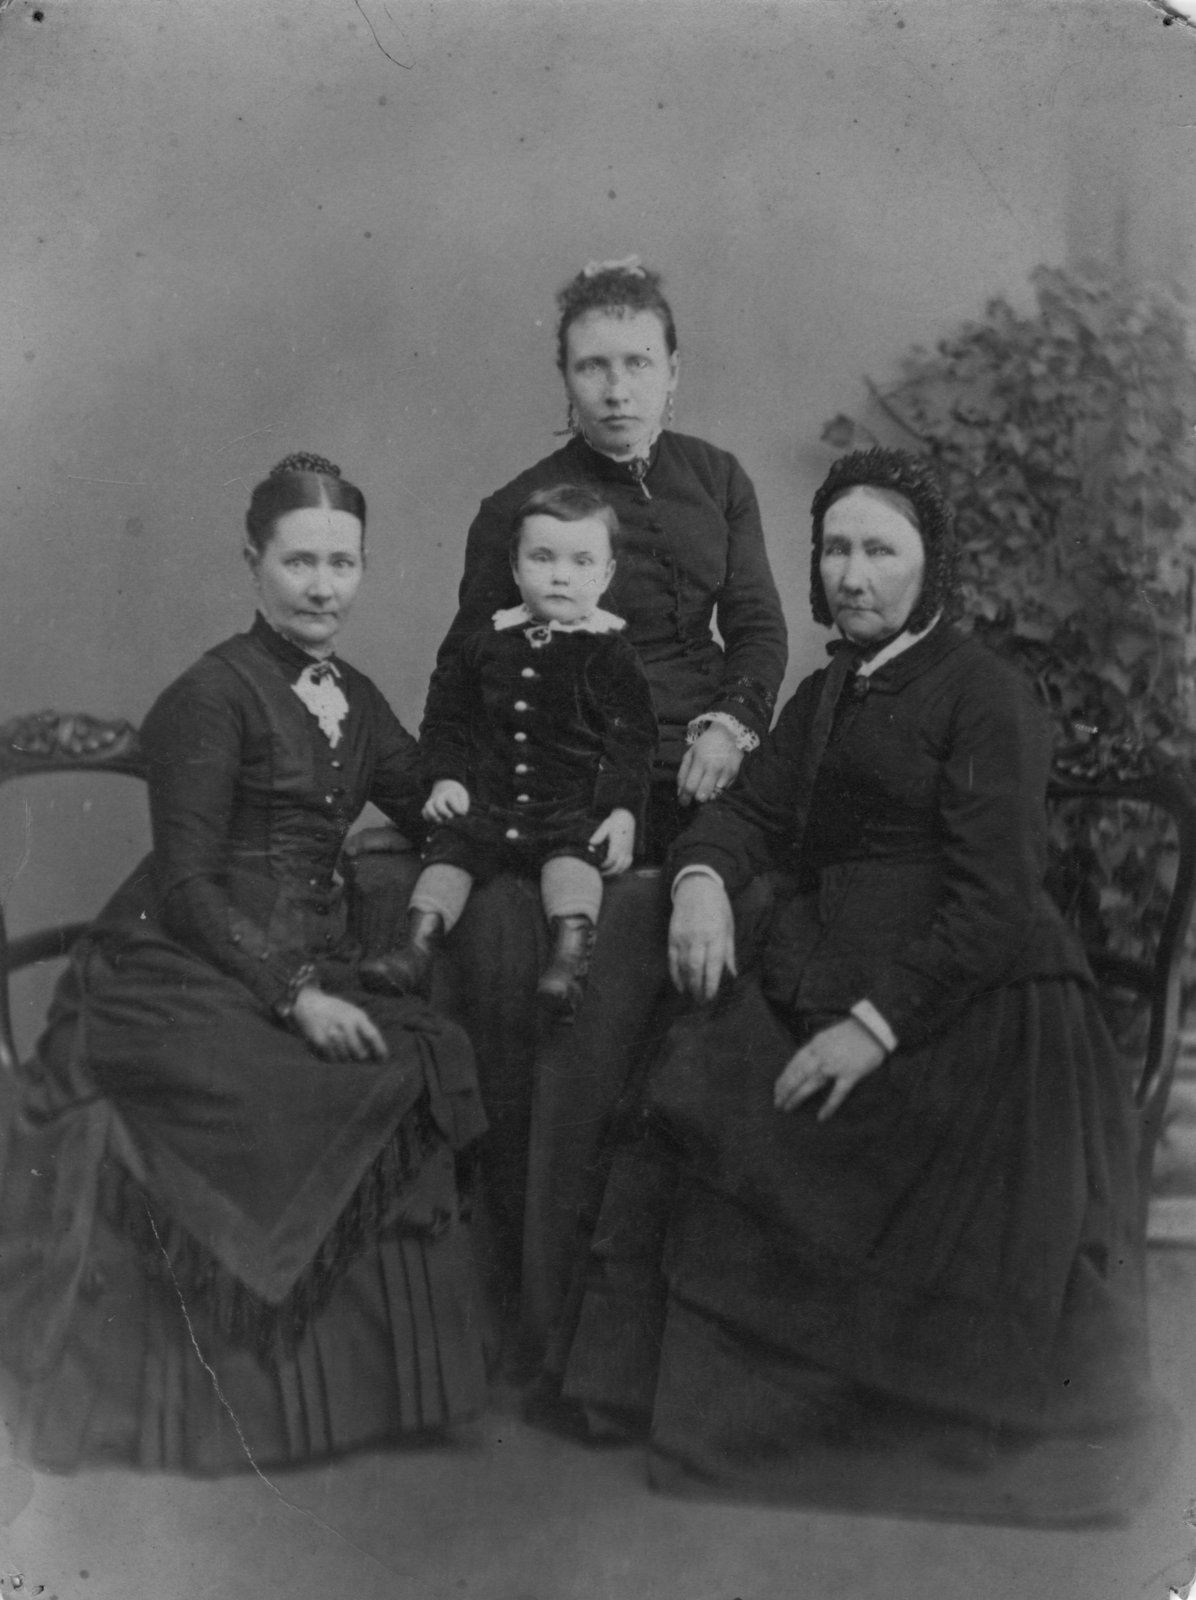 Group family portrait, likely four generations, with Mrs. Thomas Connon on the left.